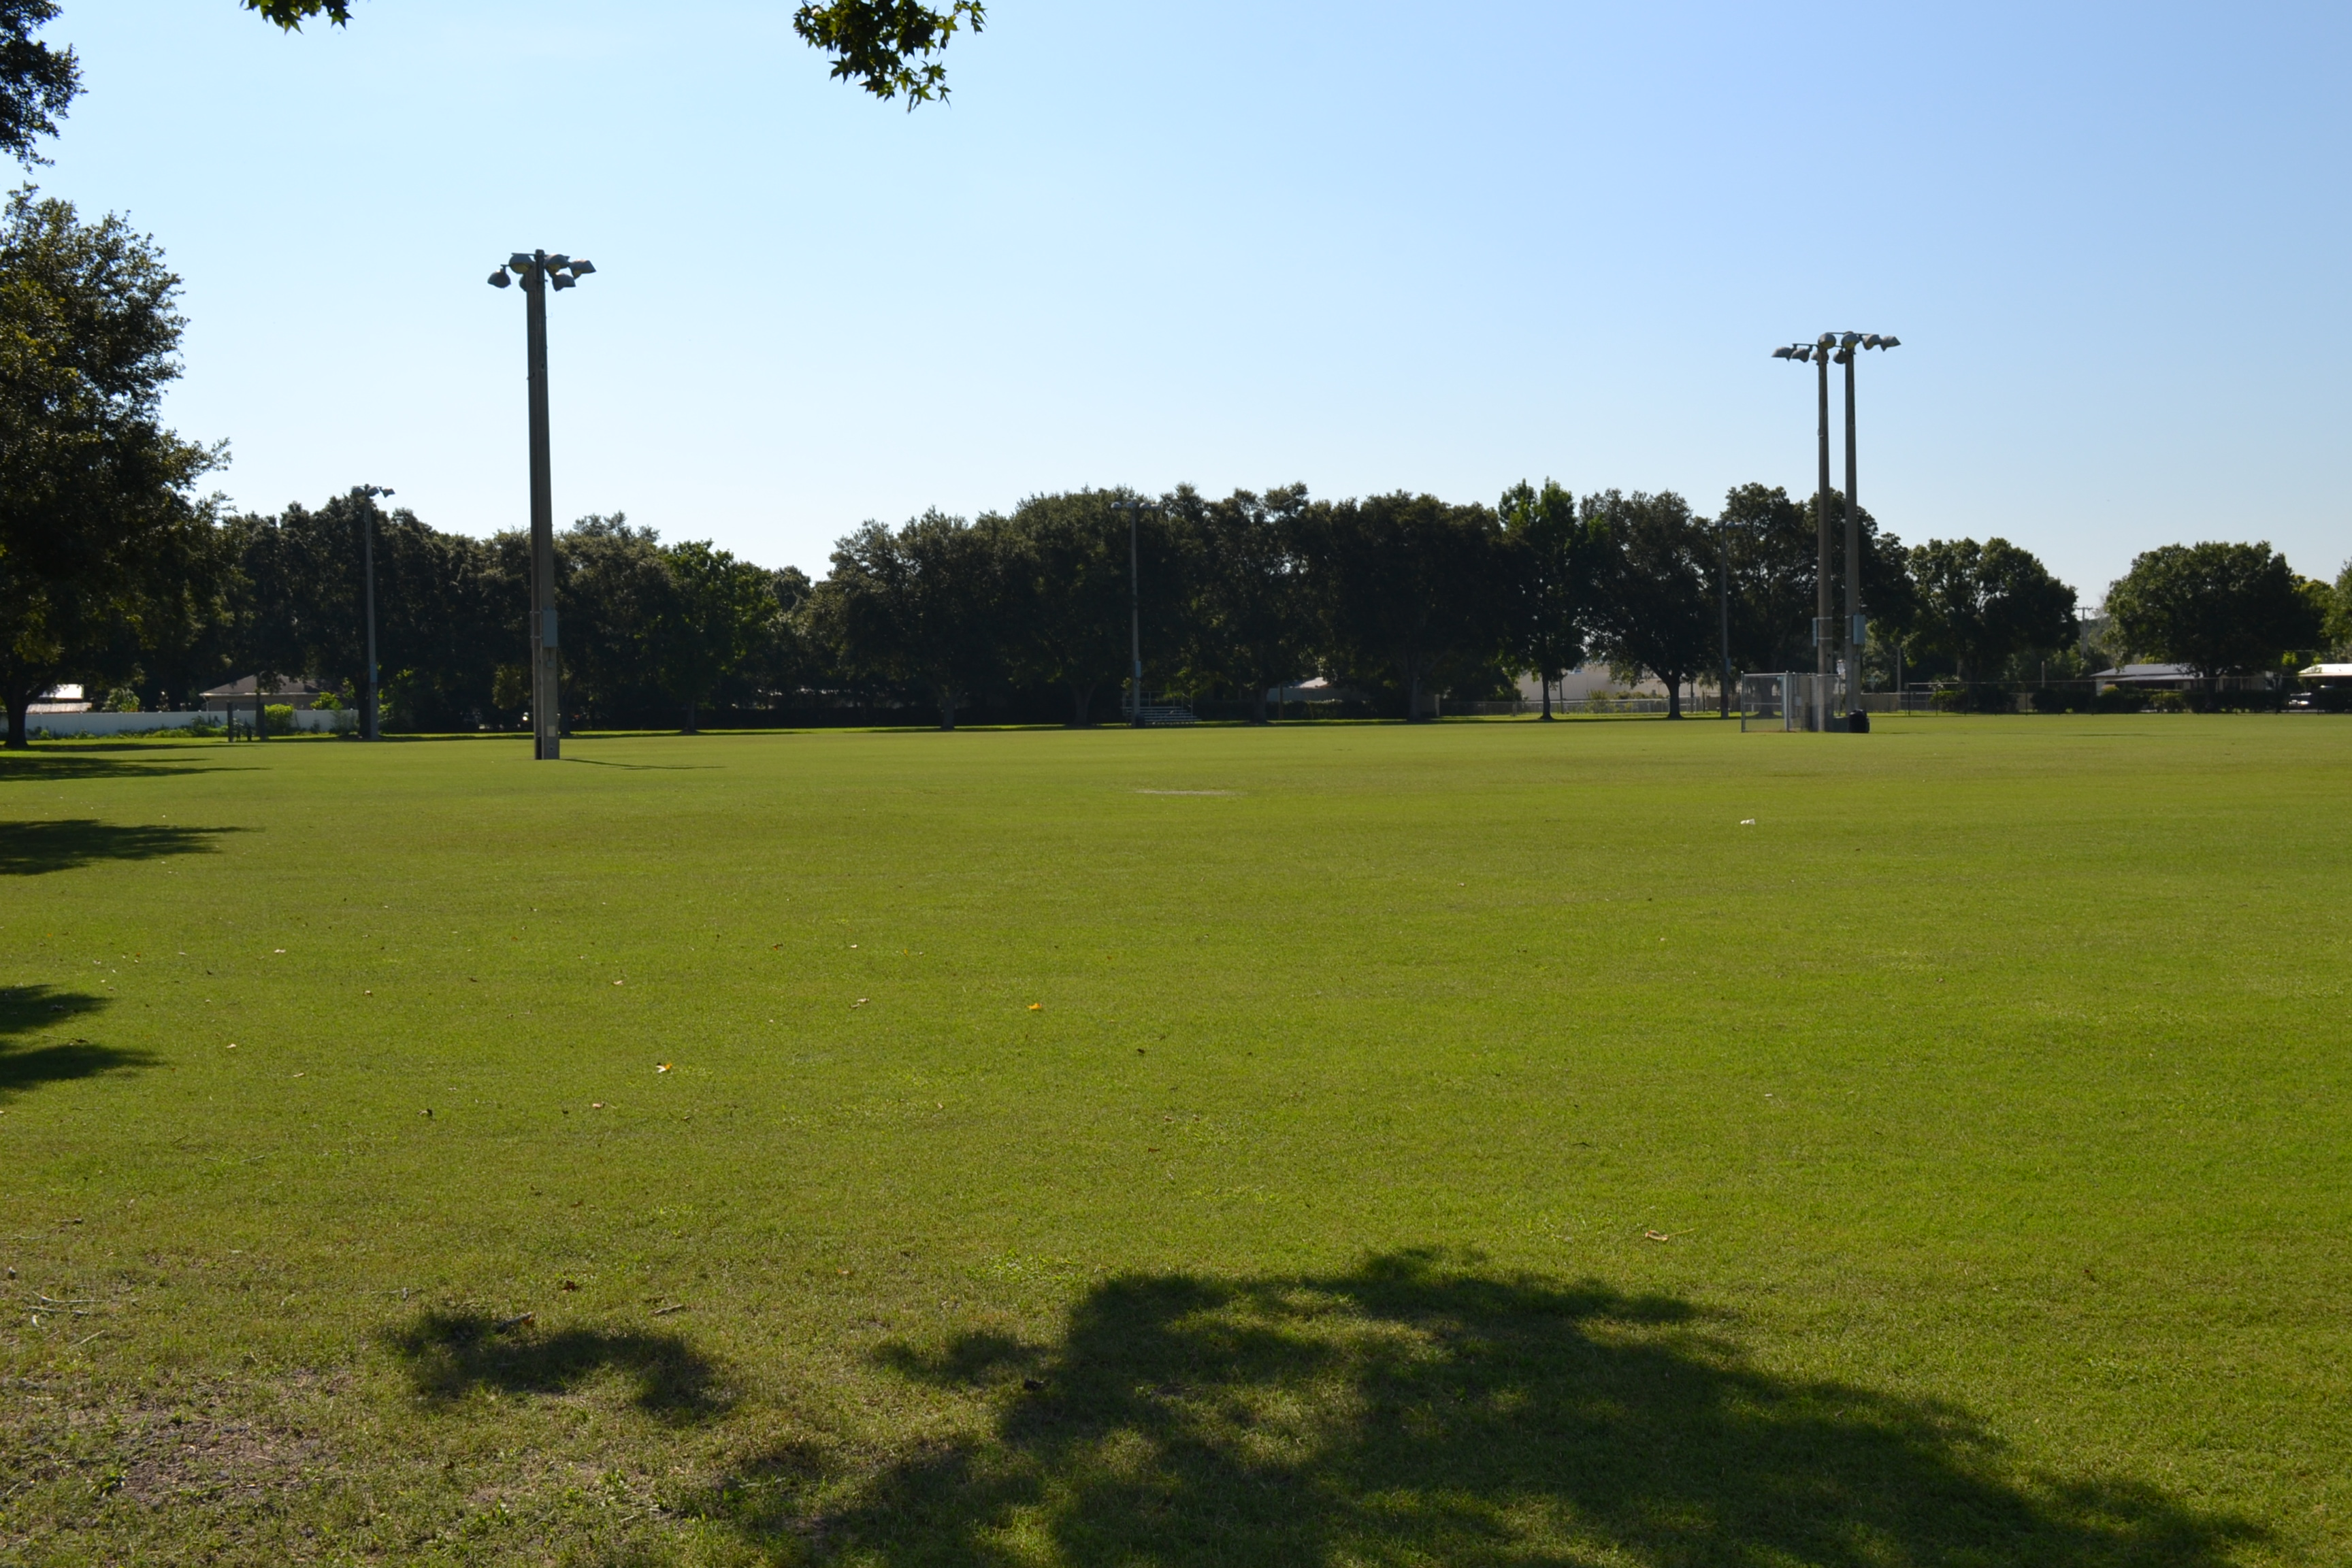 A view of the field at the Southwest Complex